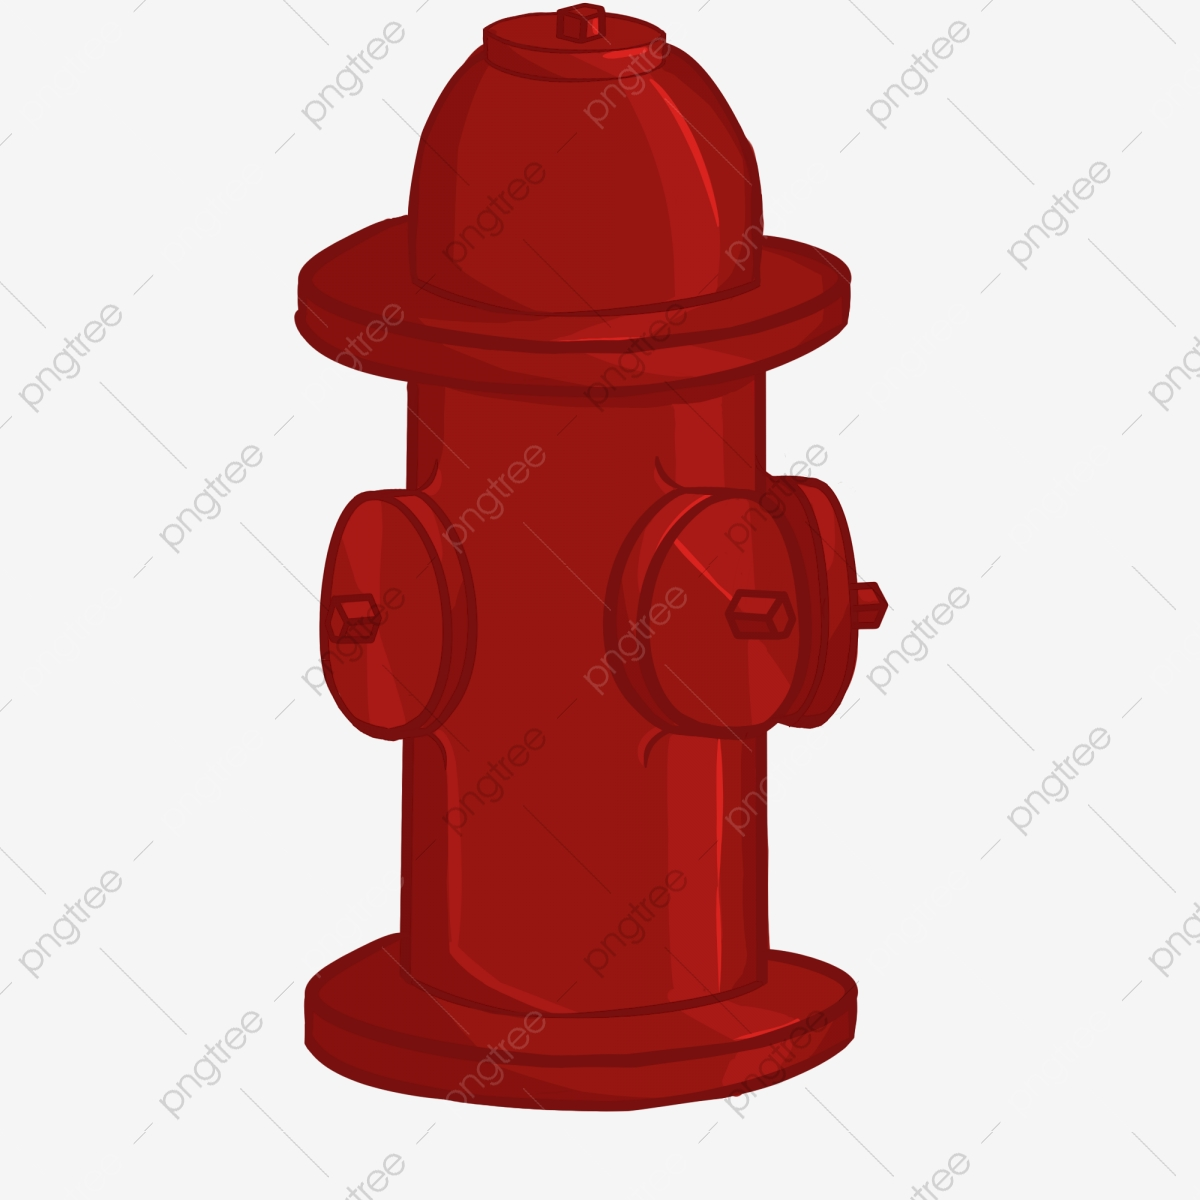 Red Fire Hydrant, Red, Fire Hydrant, Safety PNG Transparent Clipart.